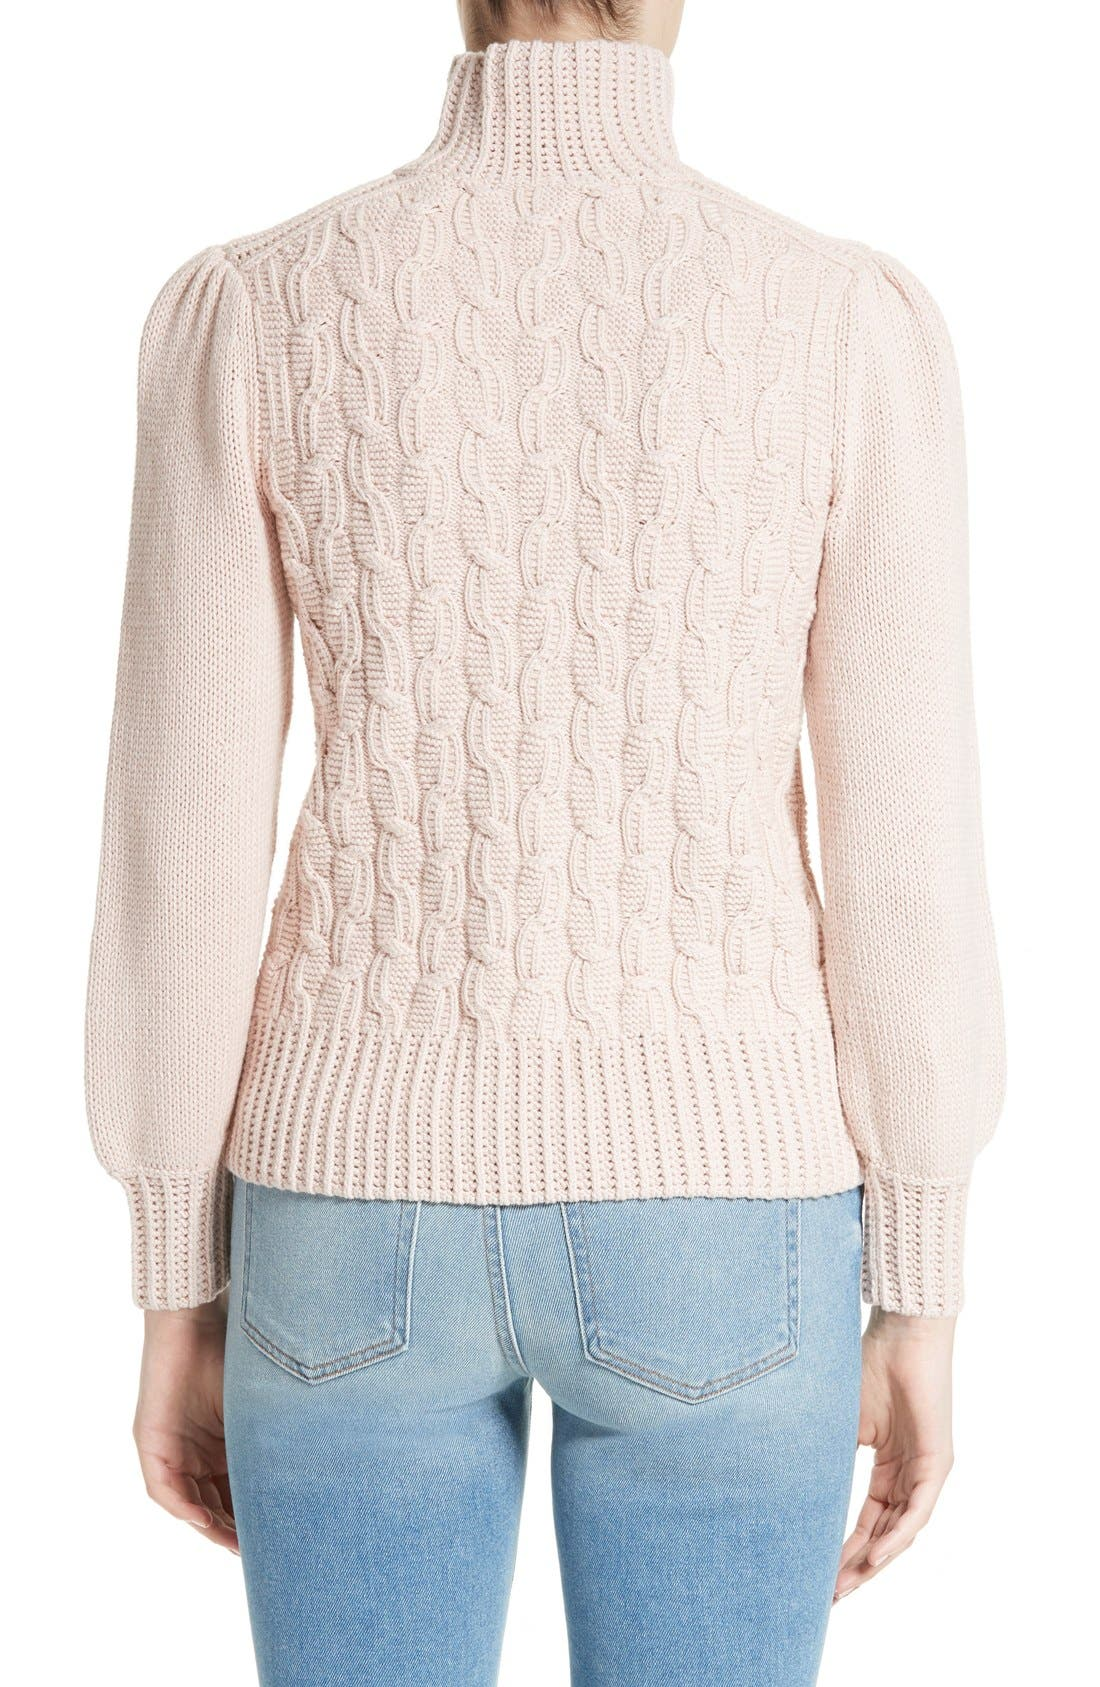 Alternate Image 2  - La Vie Rebecca Taylor Cable Knit Turtleneck Sweater